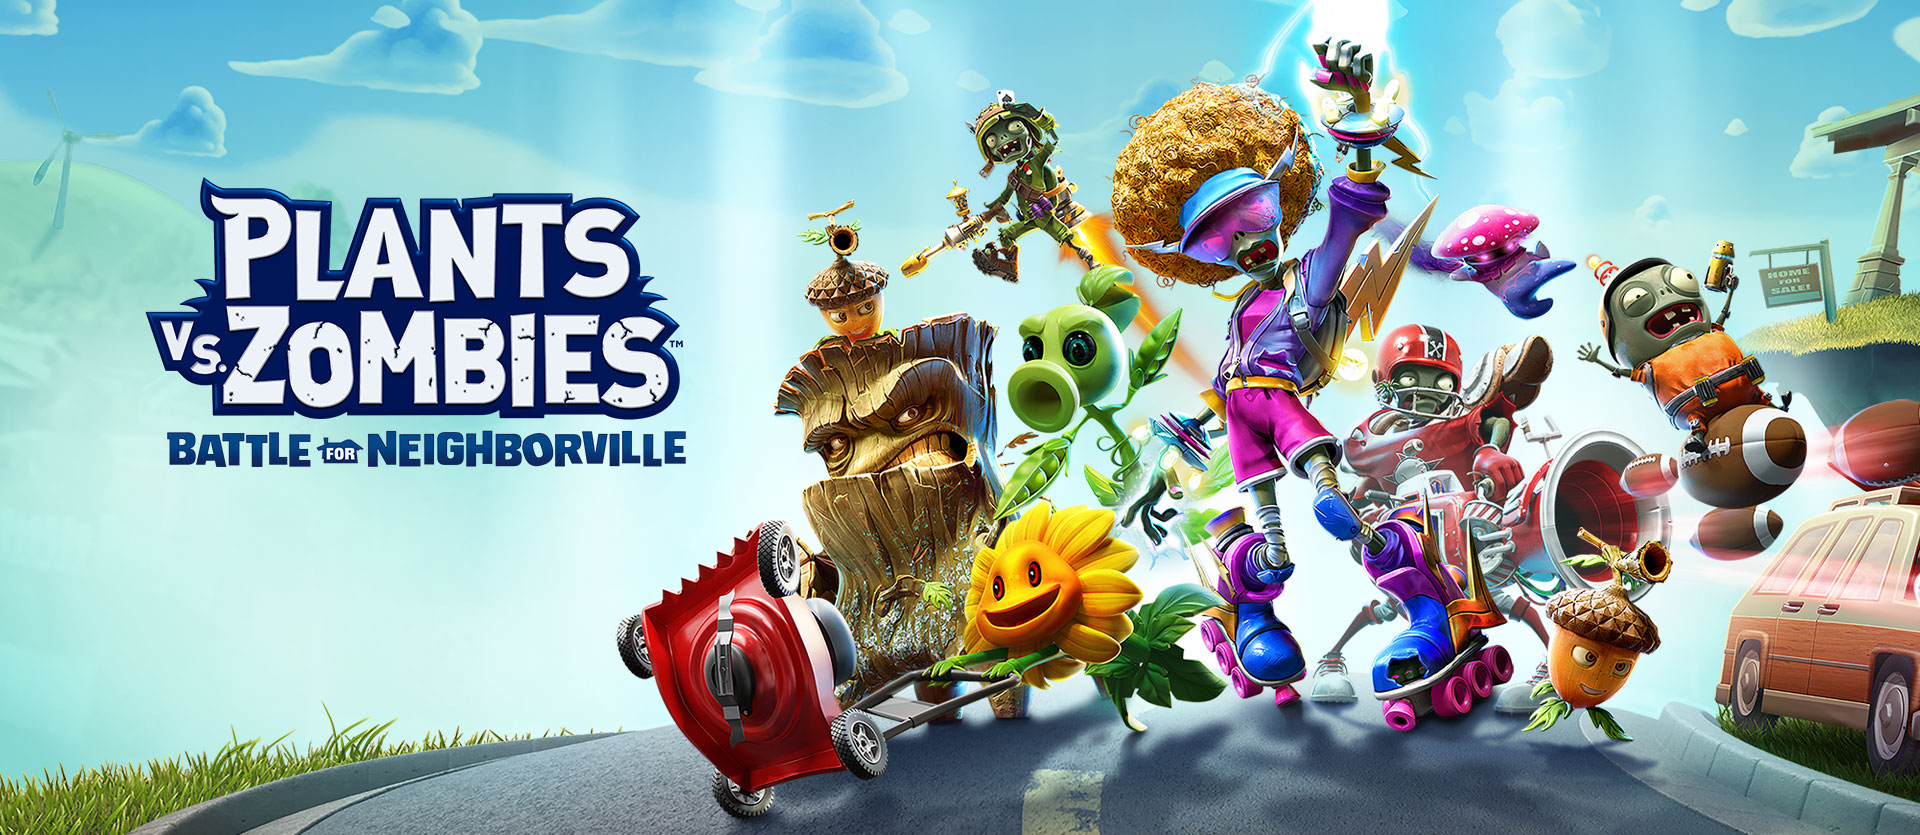 Plants vs. Zombies: Battle for Neighborville, varios personajes posando en una calle